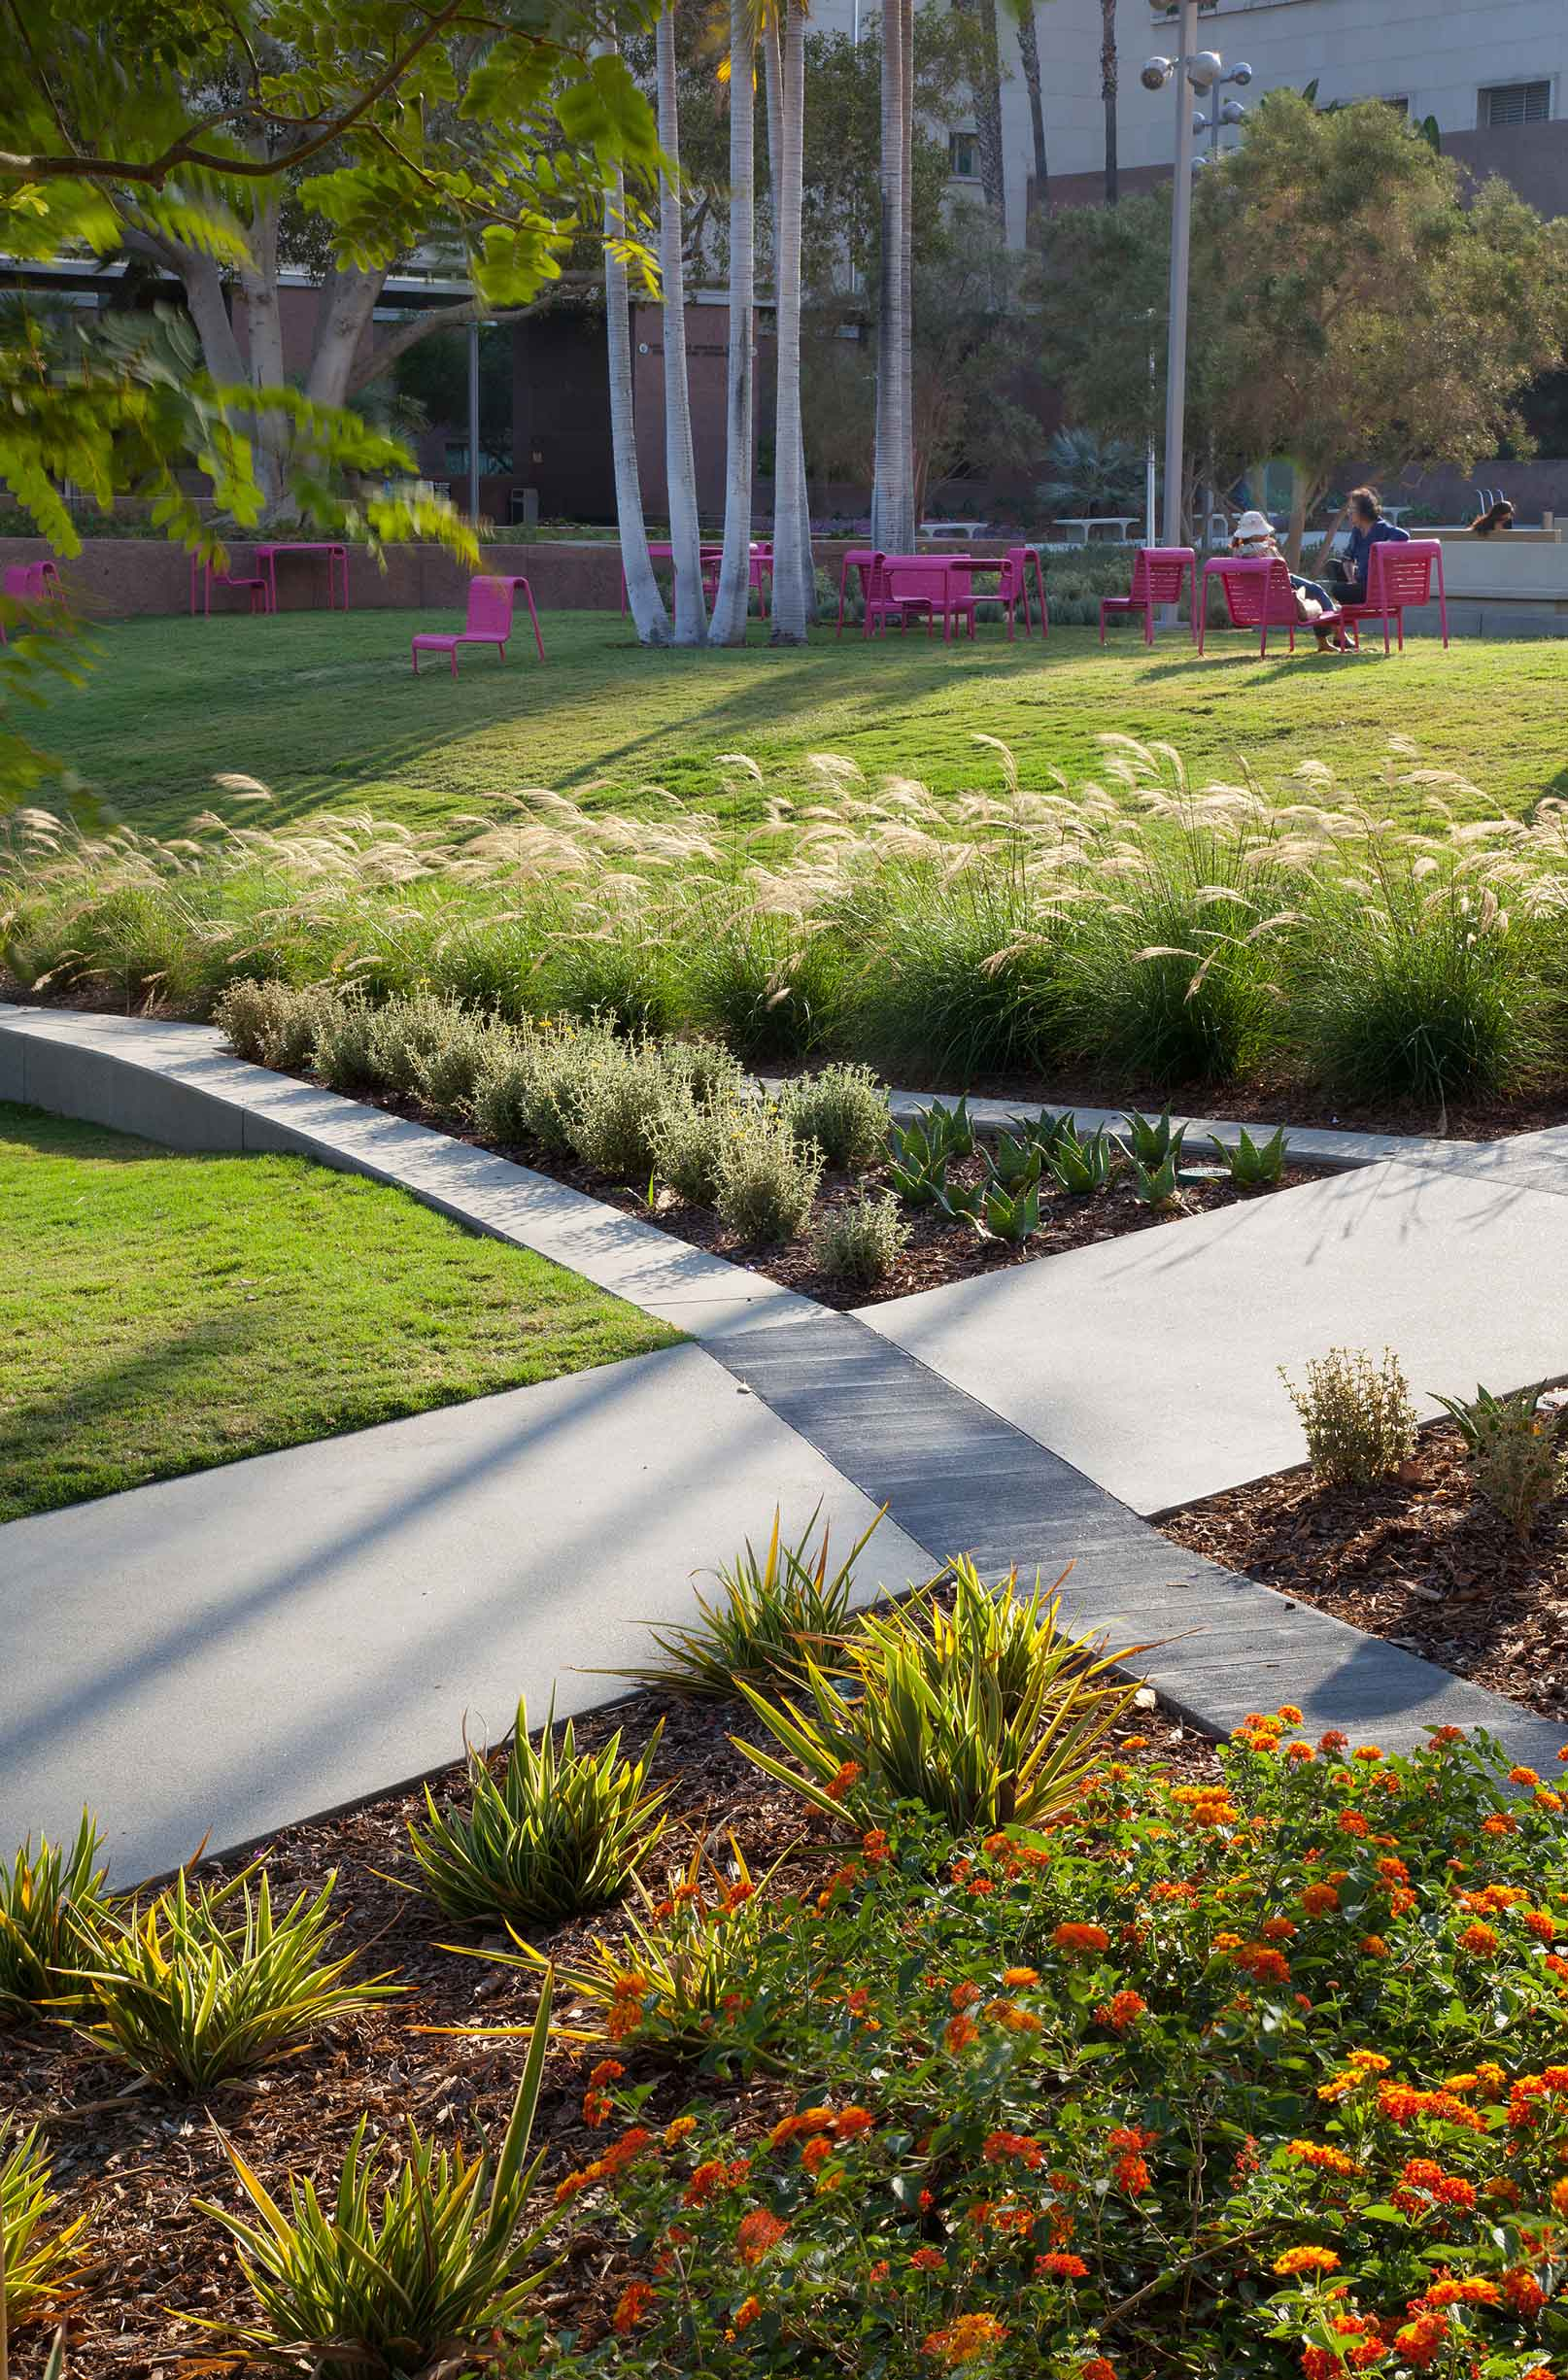 two intersecting paths with a lawn on either side, lush plants, and pink seating in the background